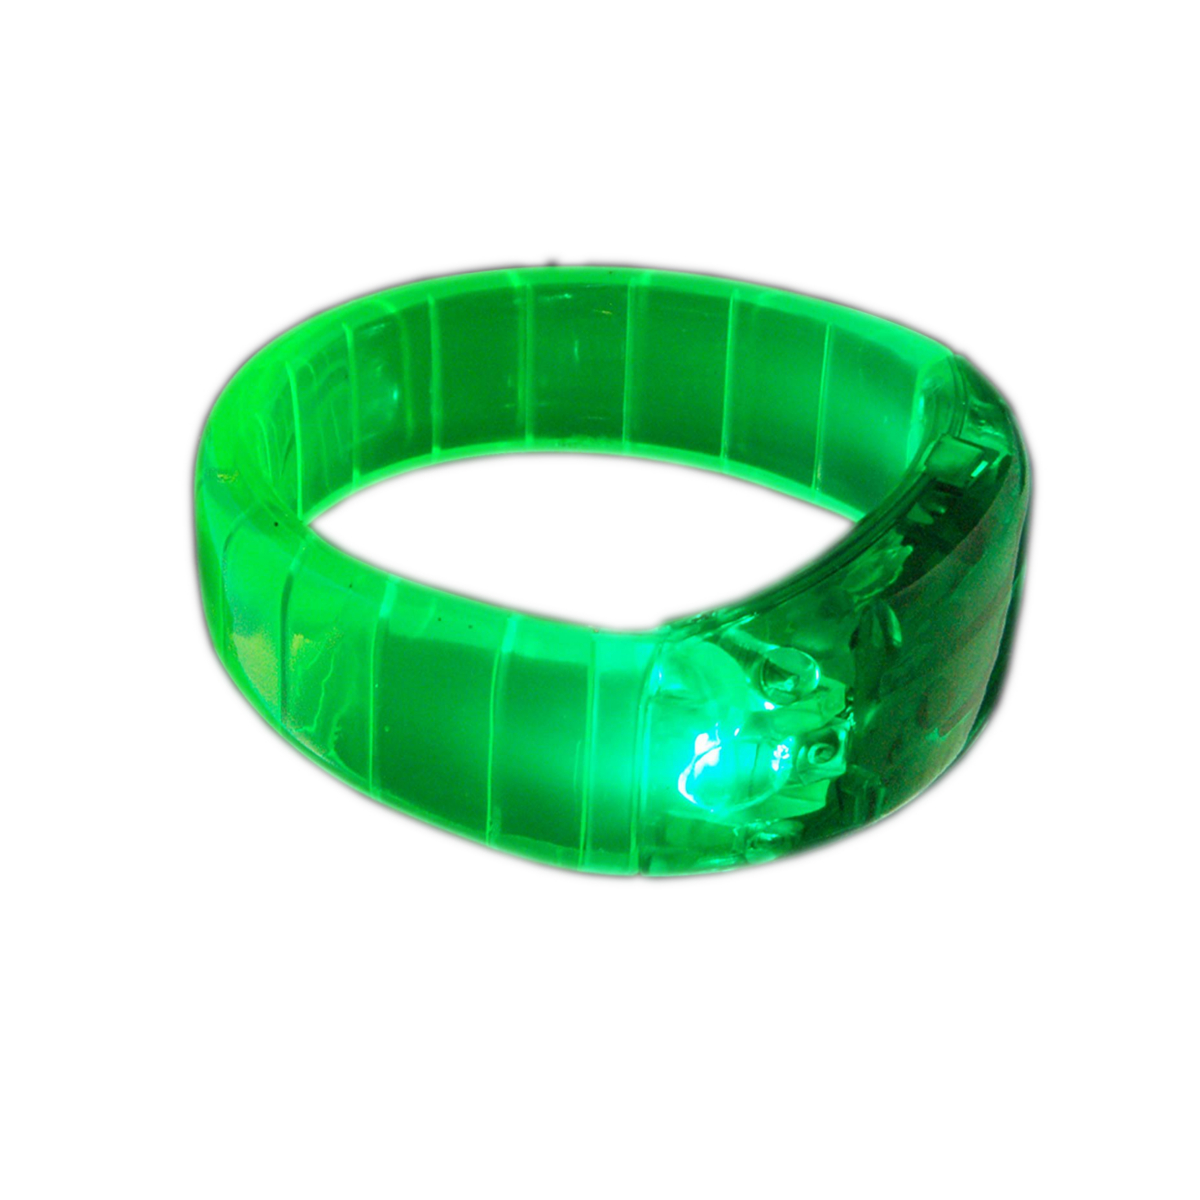 Fashion LED Bracelet Green All Products